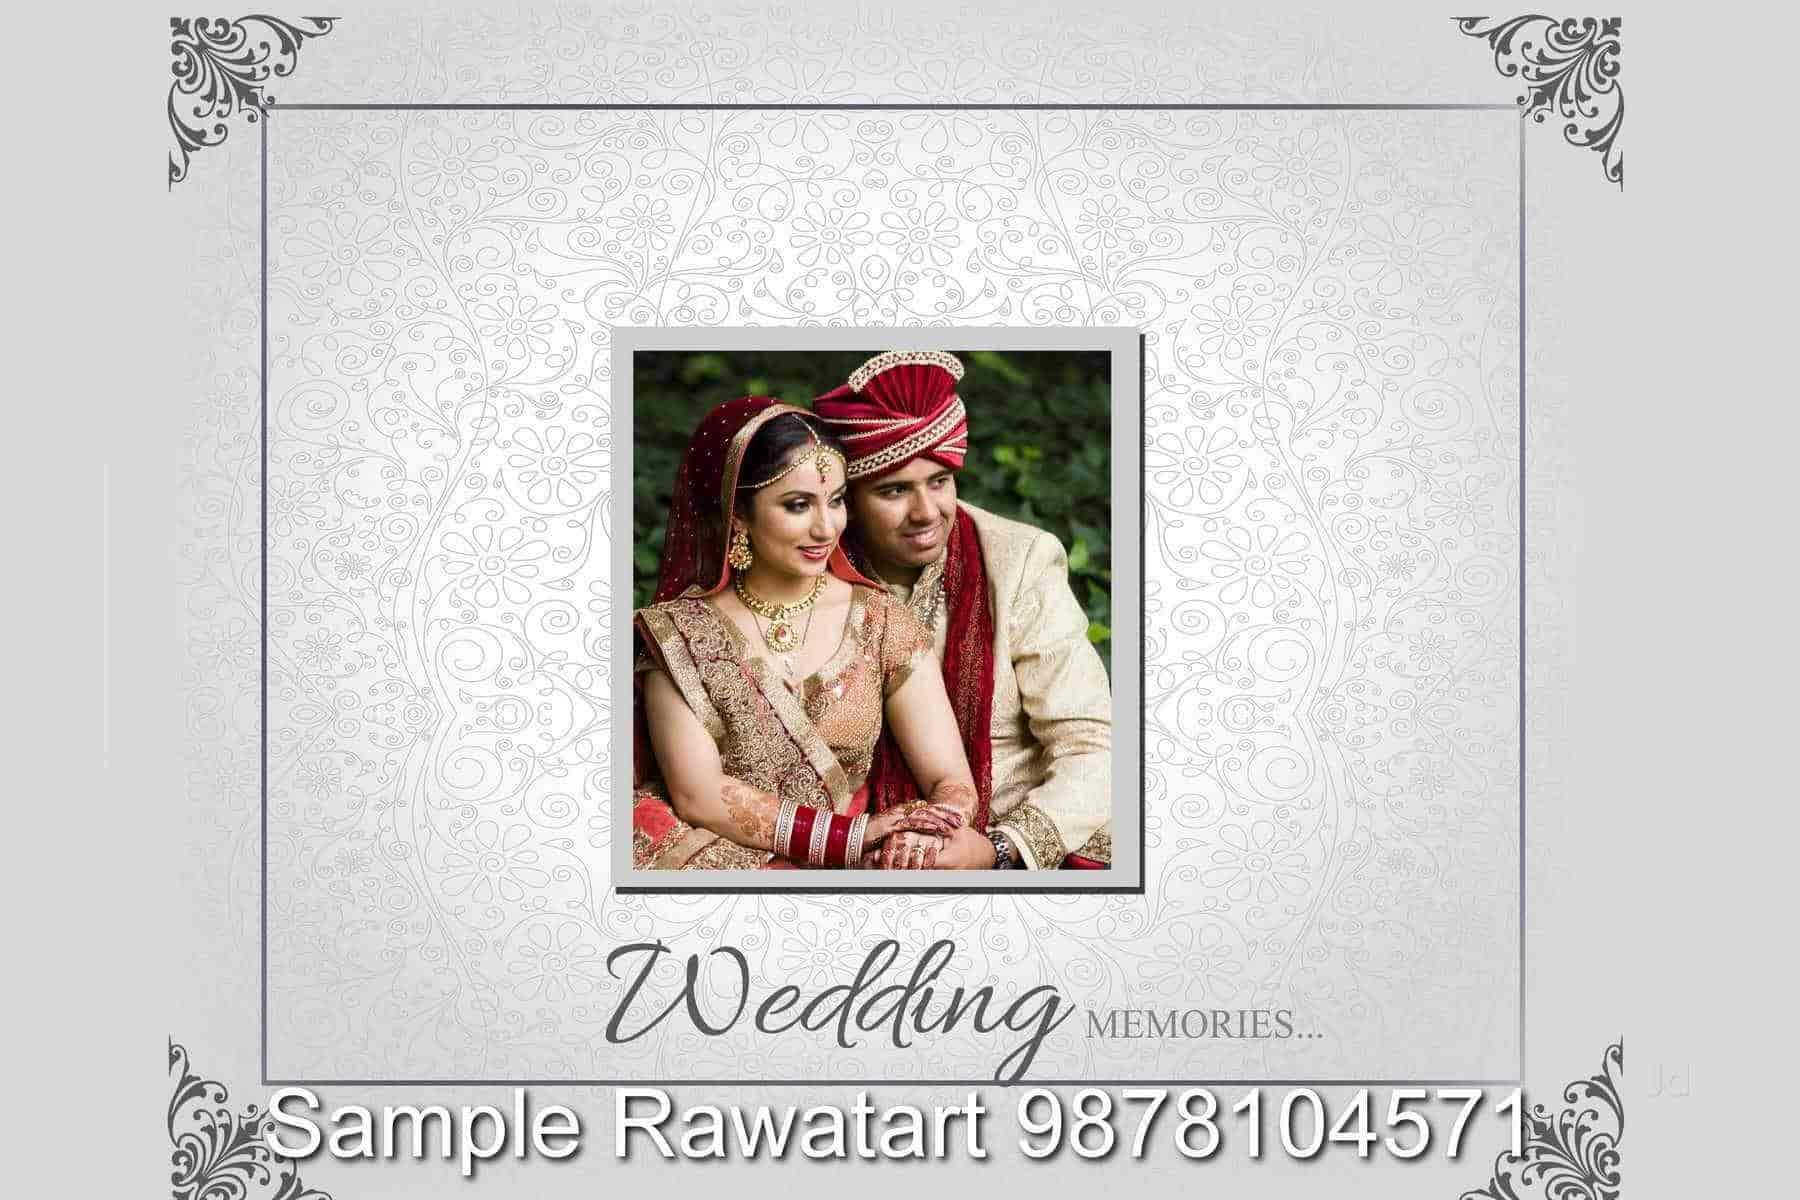 Rawat Art Sector 22b Wedding Photo Album Designers In Chandigarh